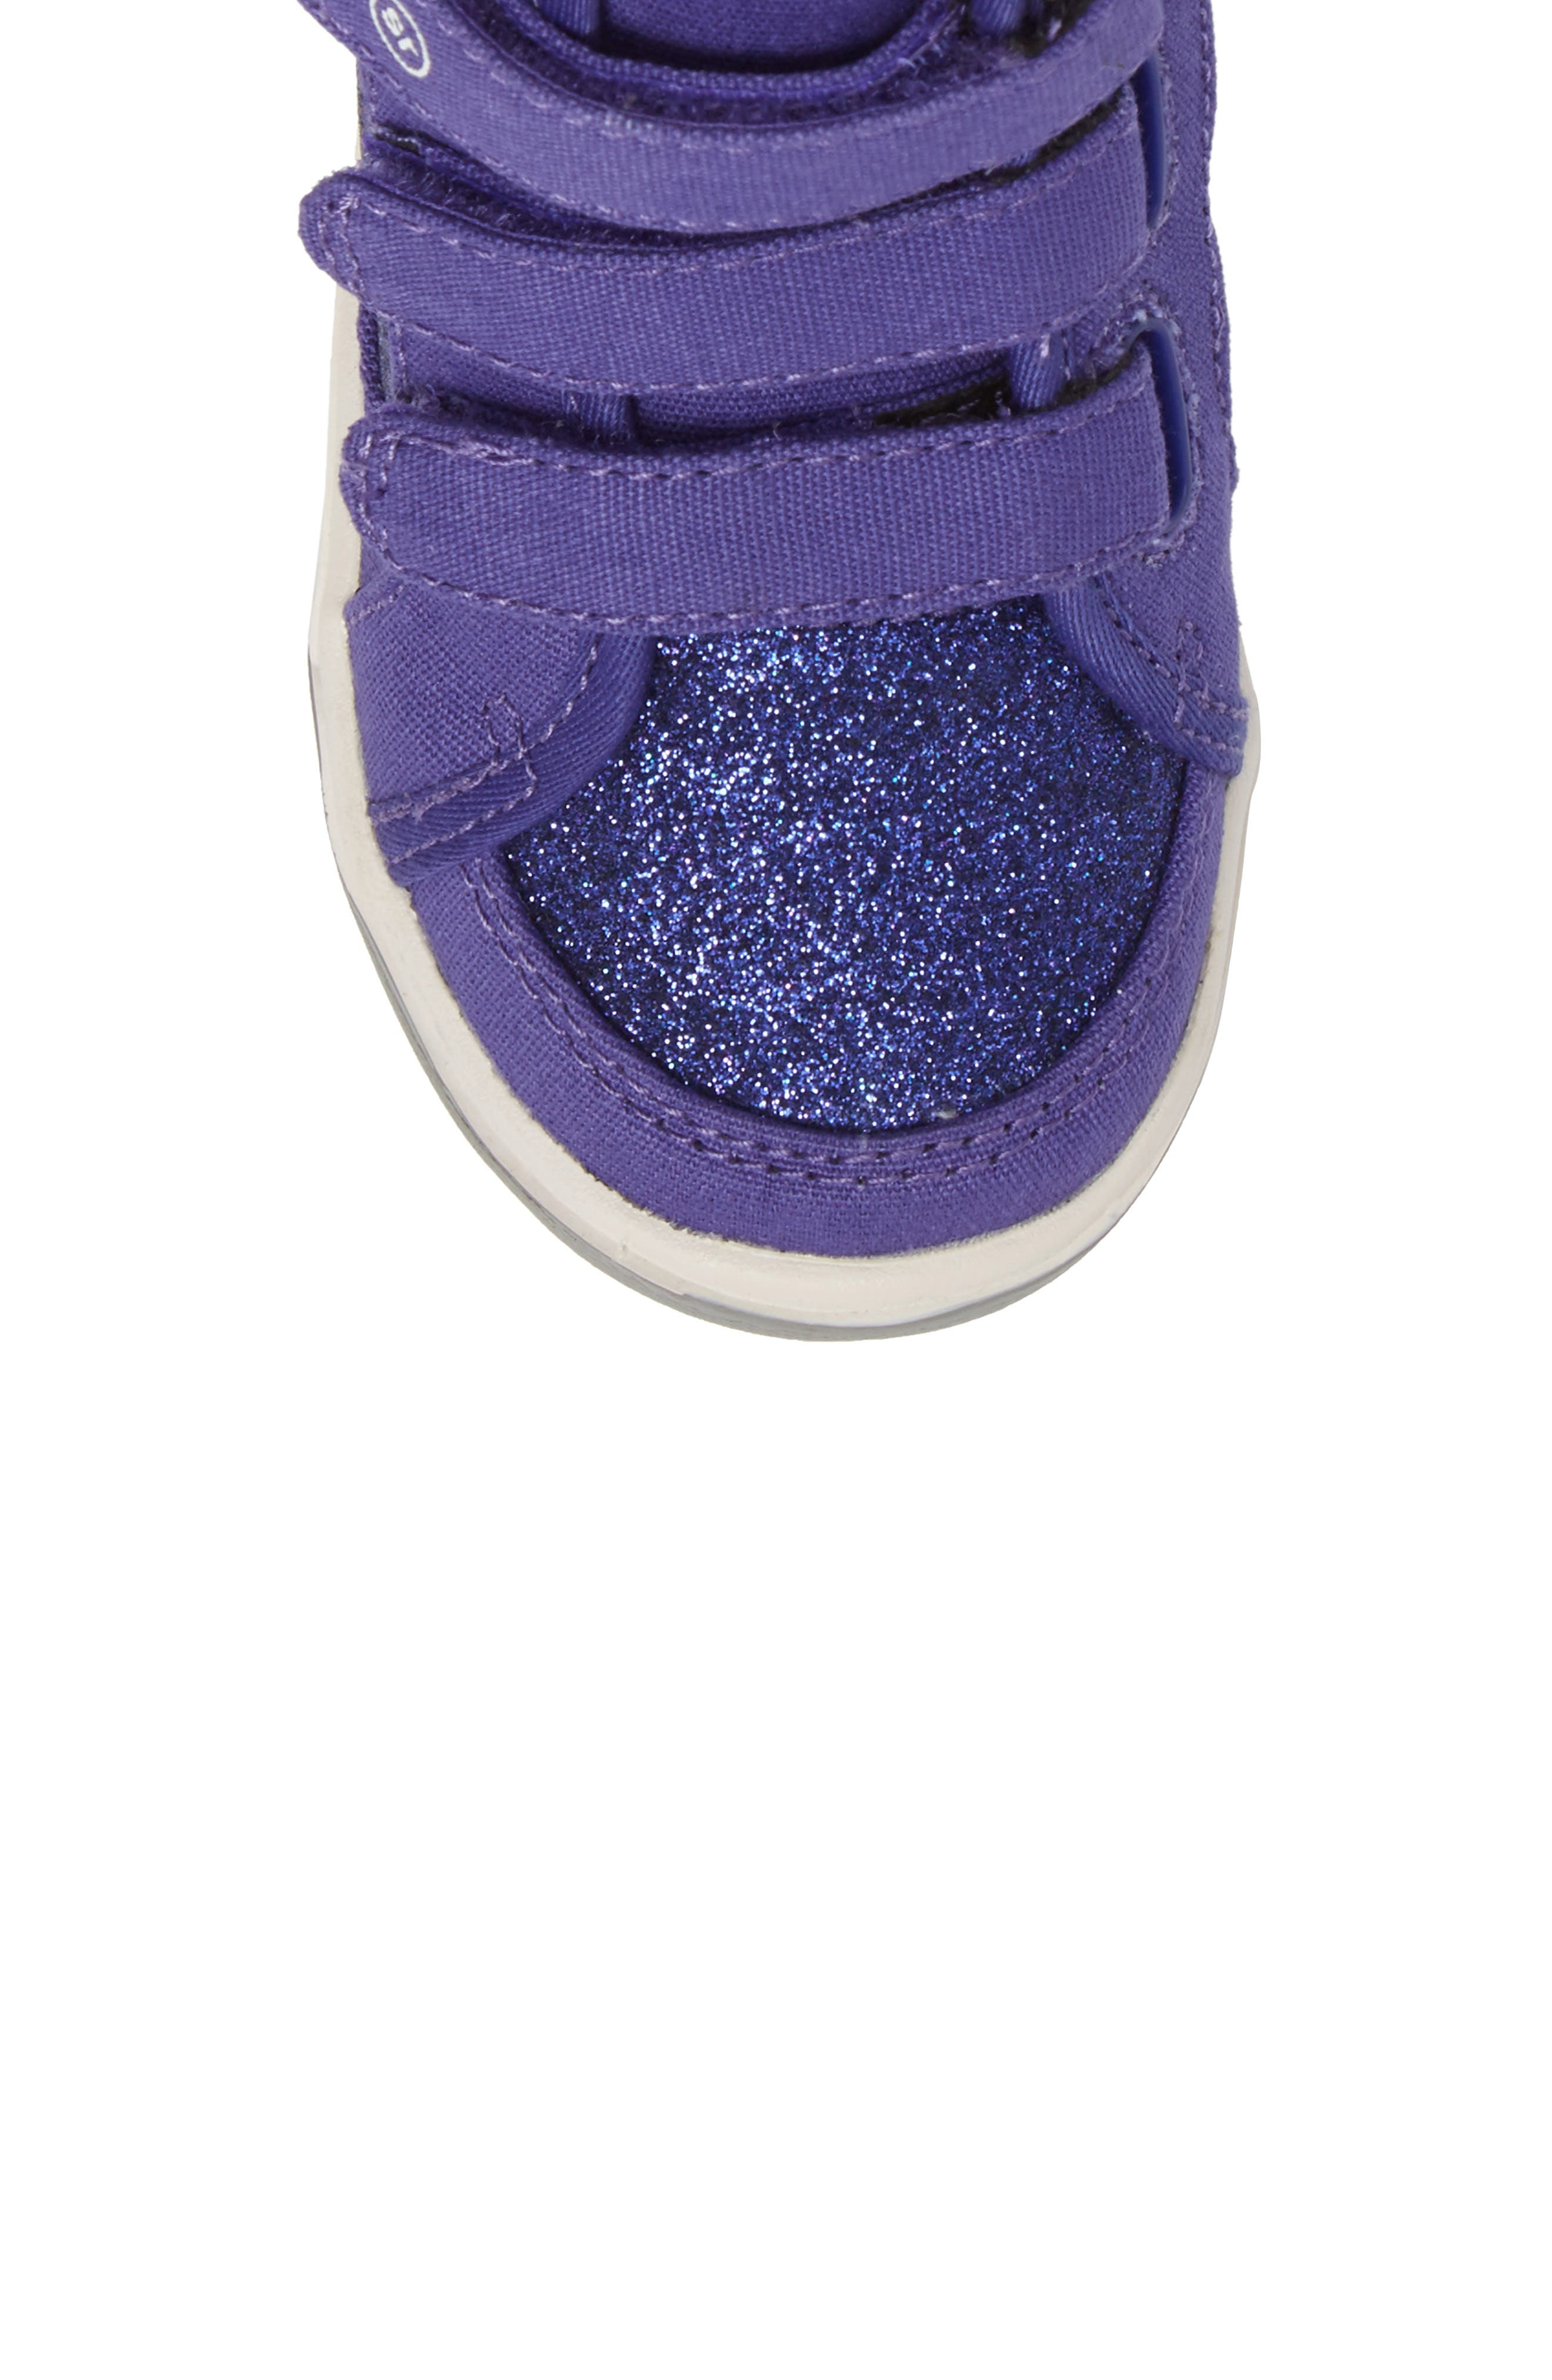 Ellis Glitter High Top Sneaker,                             Alternate thumbnail 5, color,                             Purple